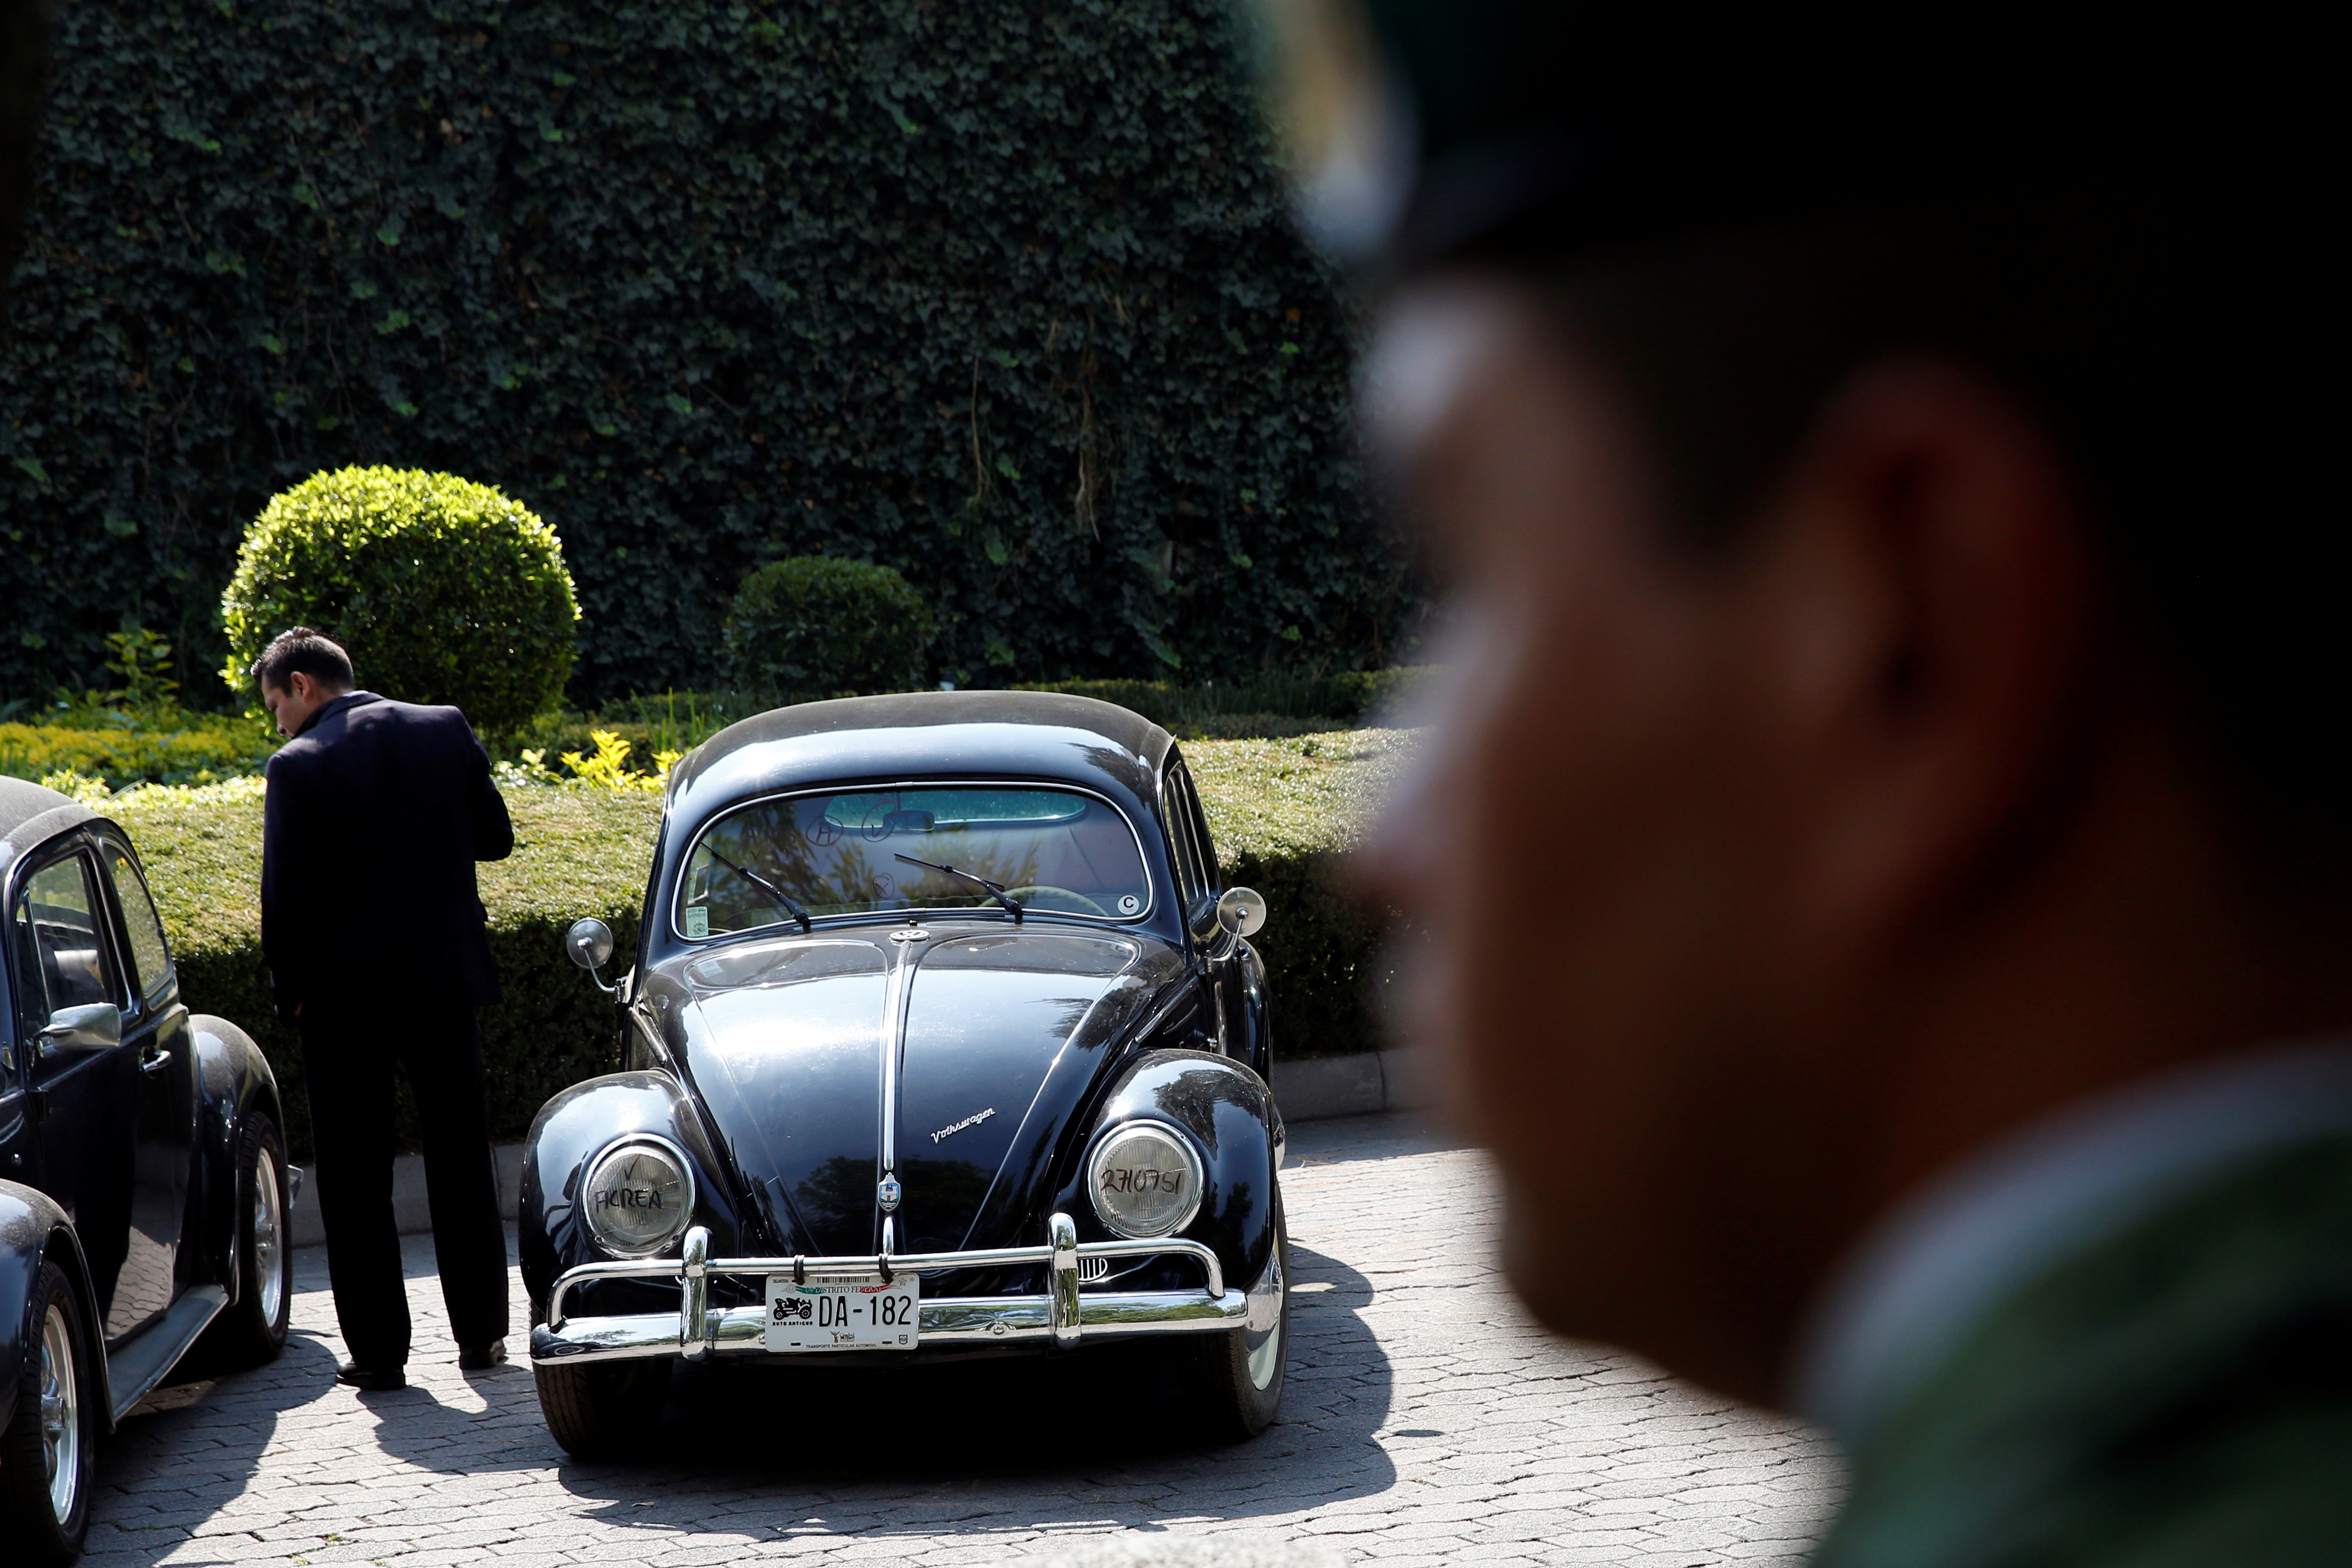 A man stands next to a 1951 Volkswagen, part of the fleet of vehicles seized by the government from politicians and organized crime as part of an auction in Mexico City, May 21, 2019.